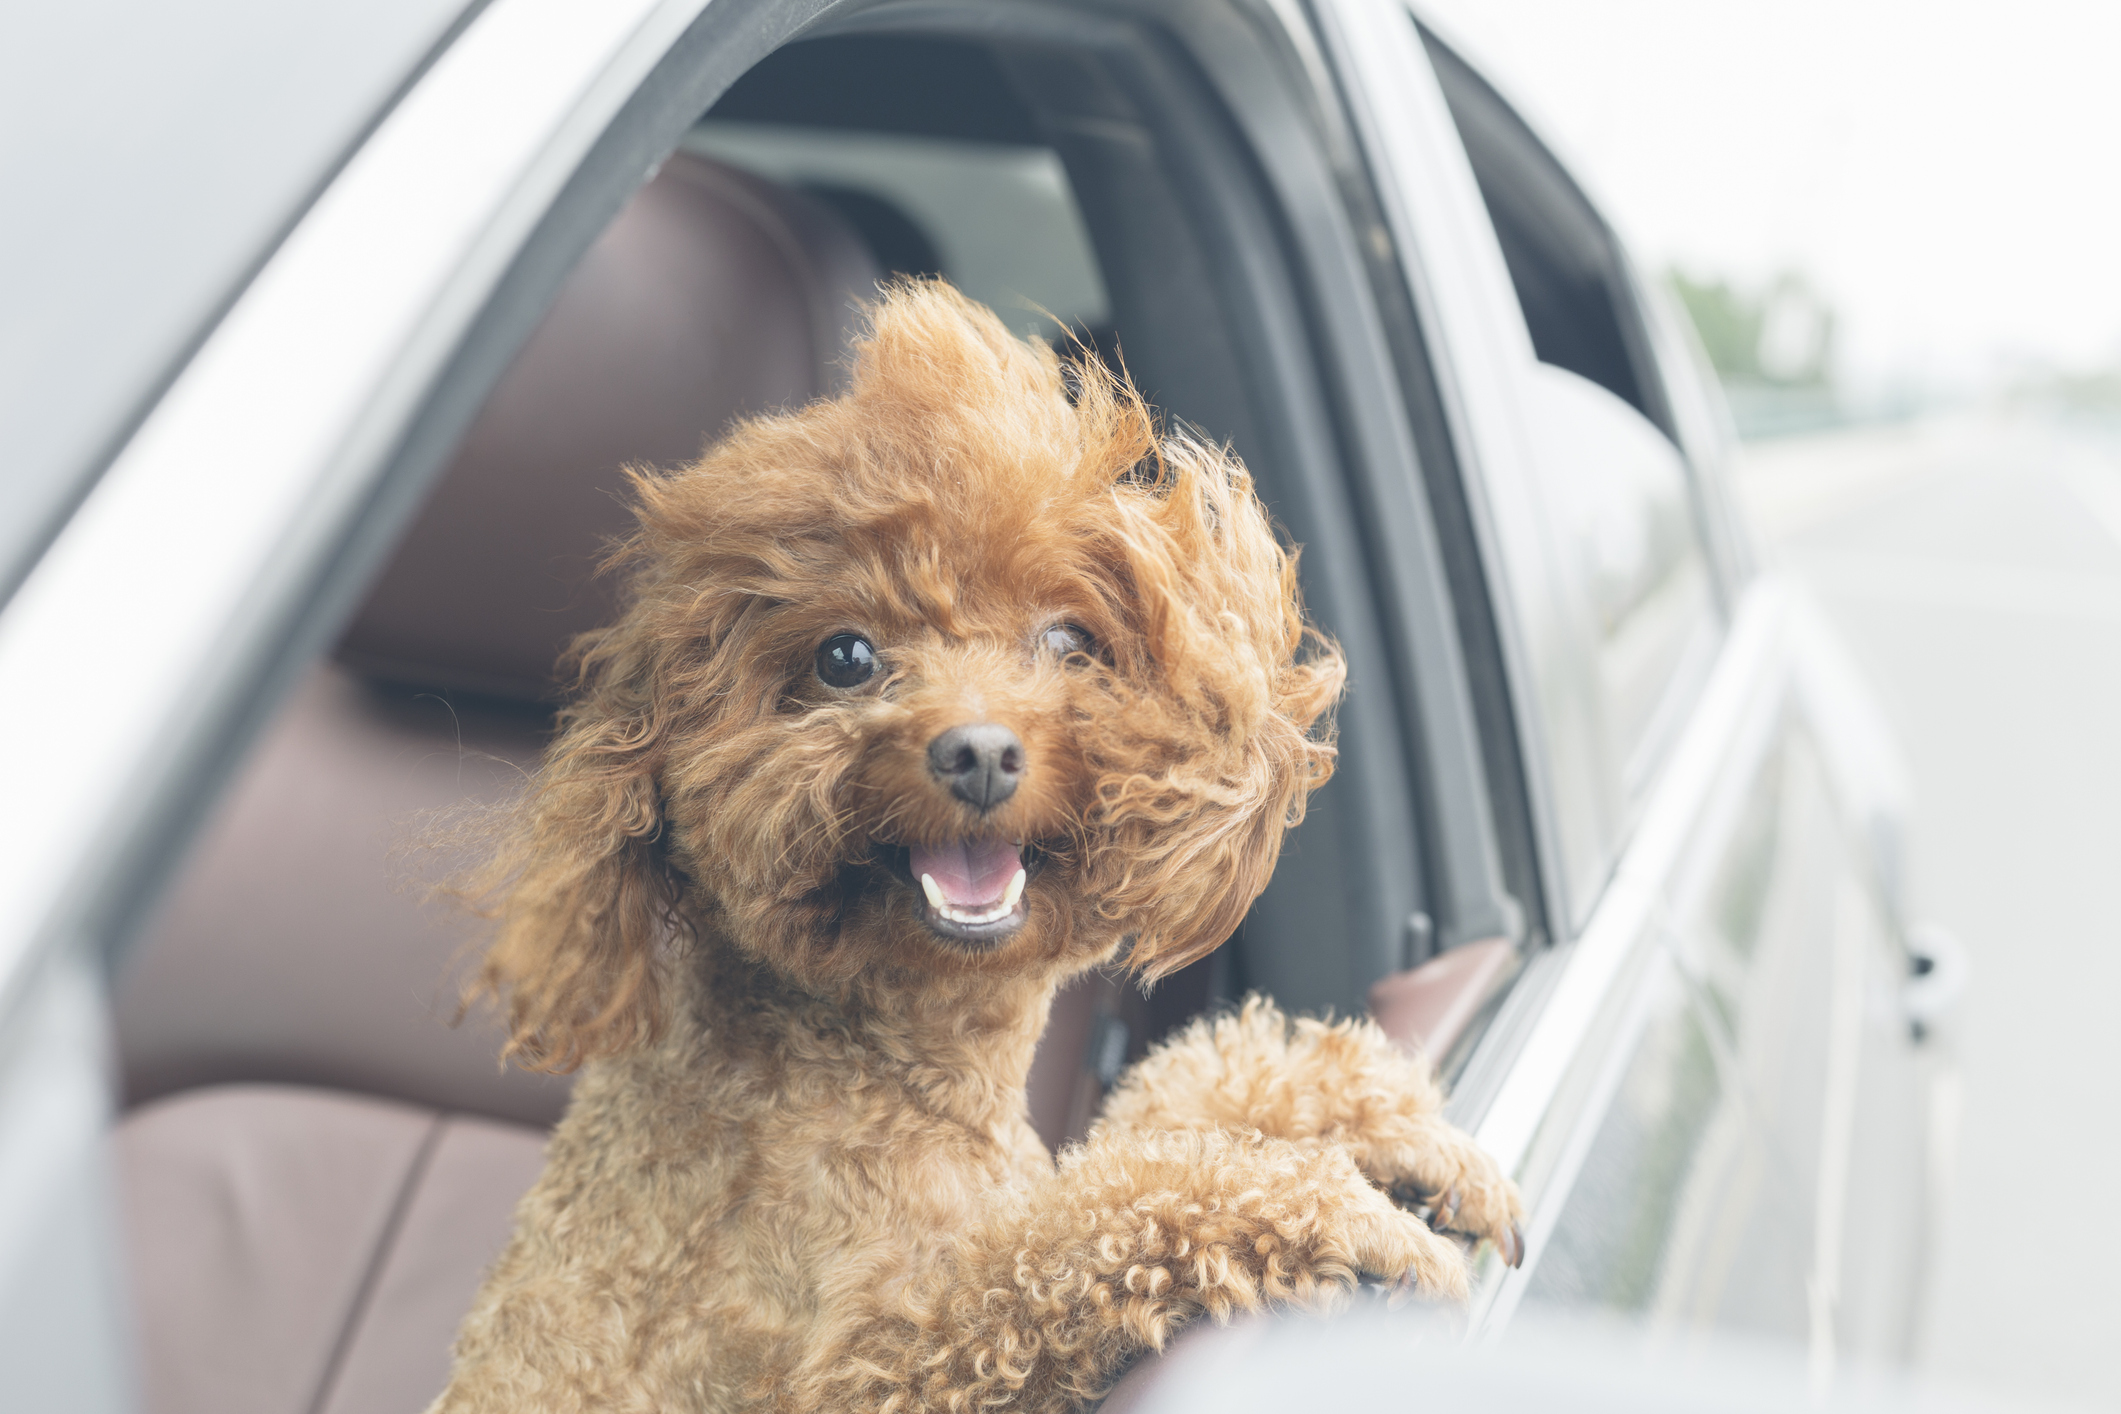 A cute poodle mix sticks his head out of car window